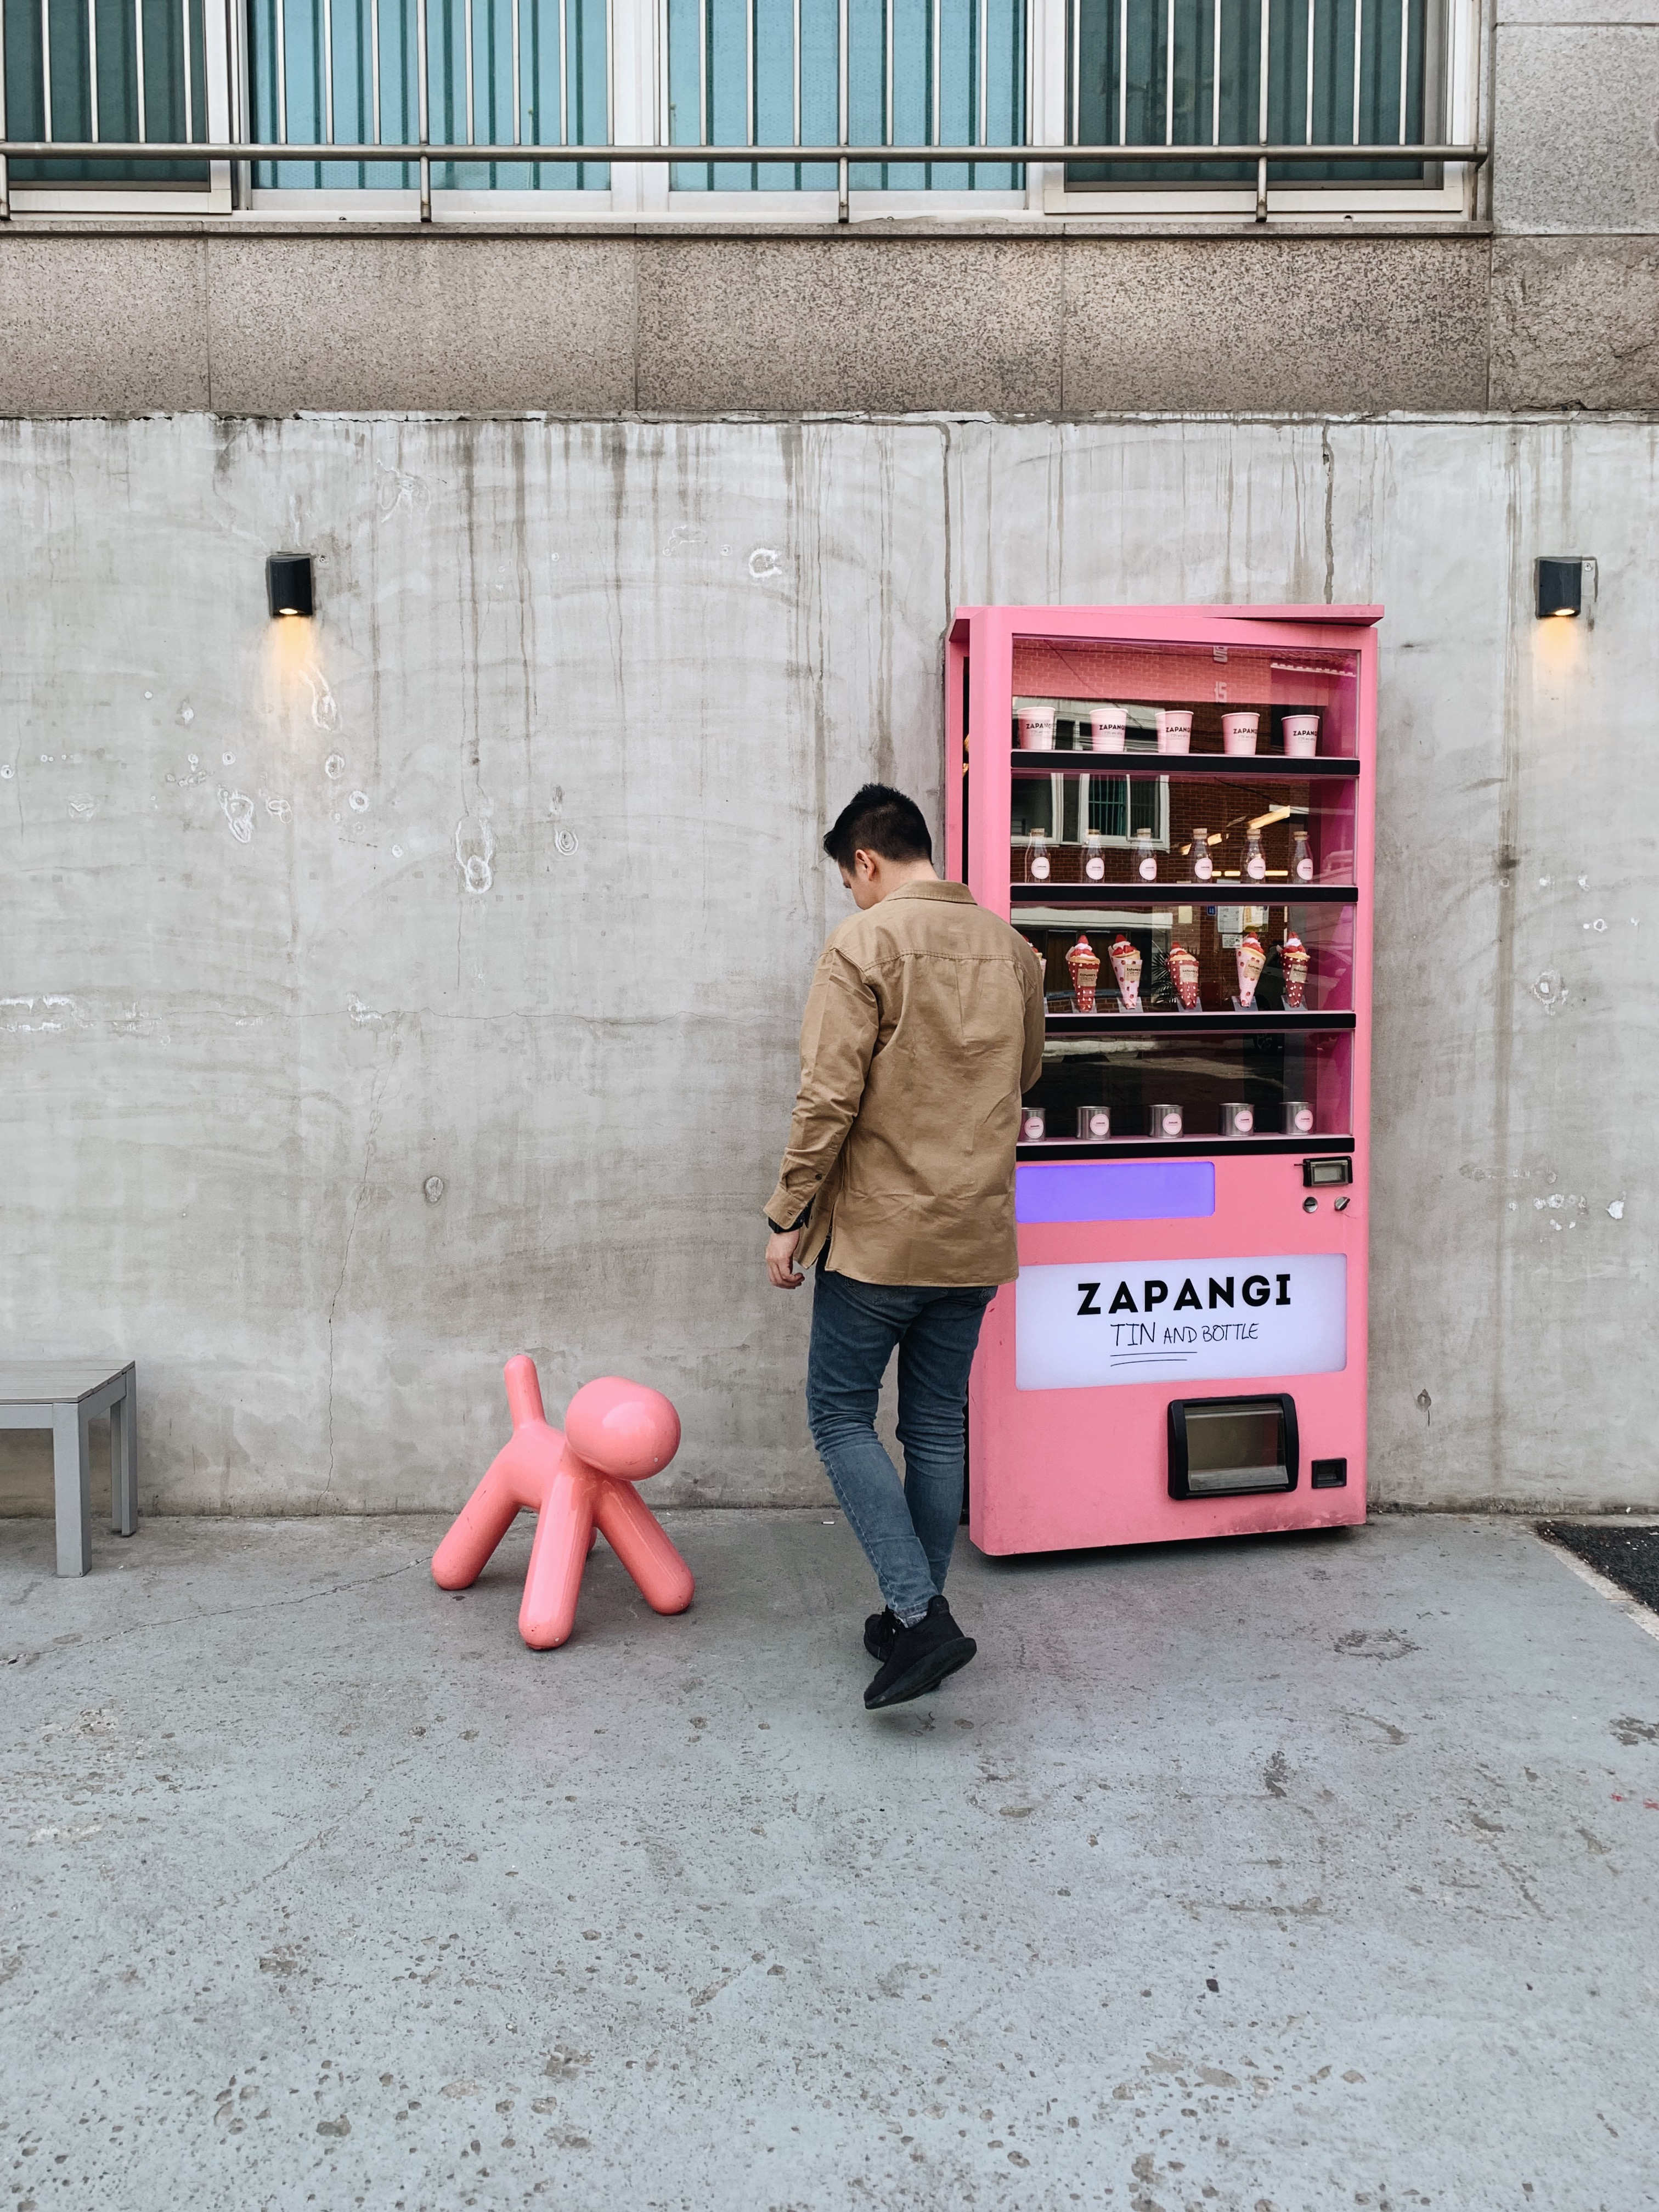 Zapangi Seoul Storefront with vending machine door